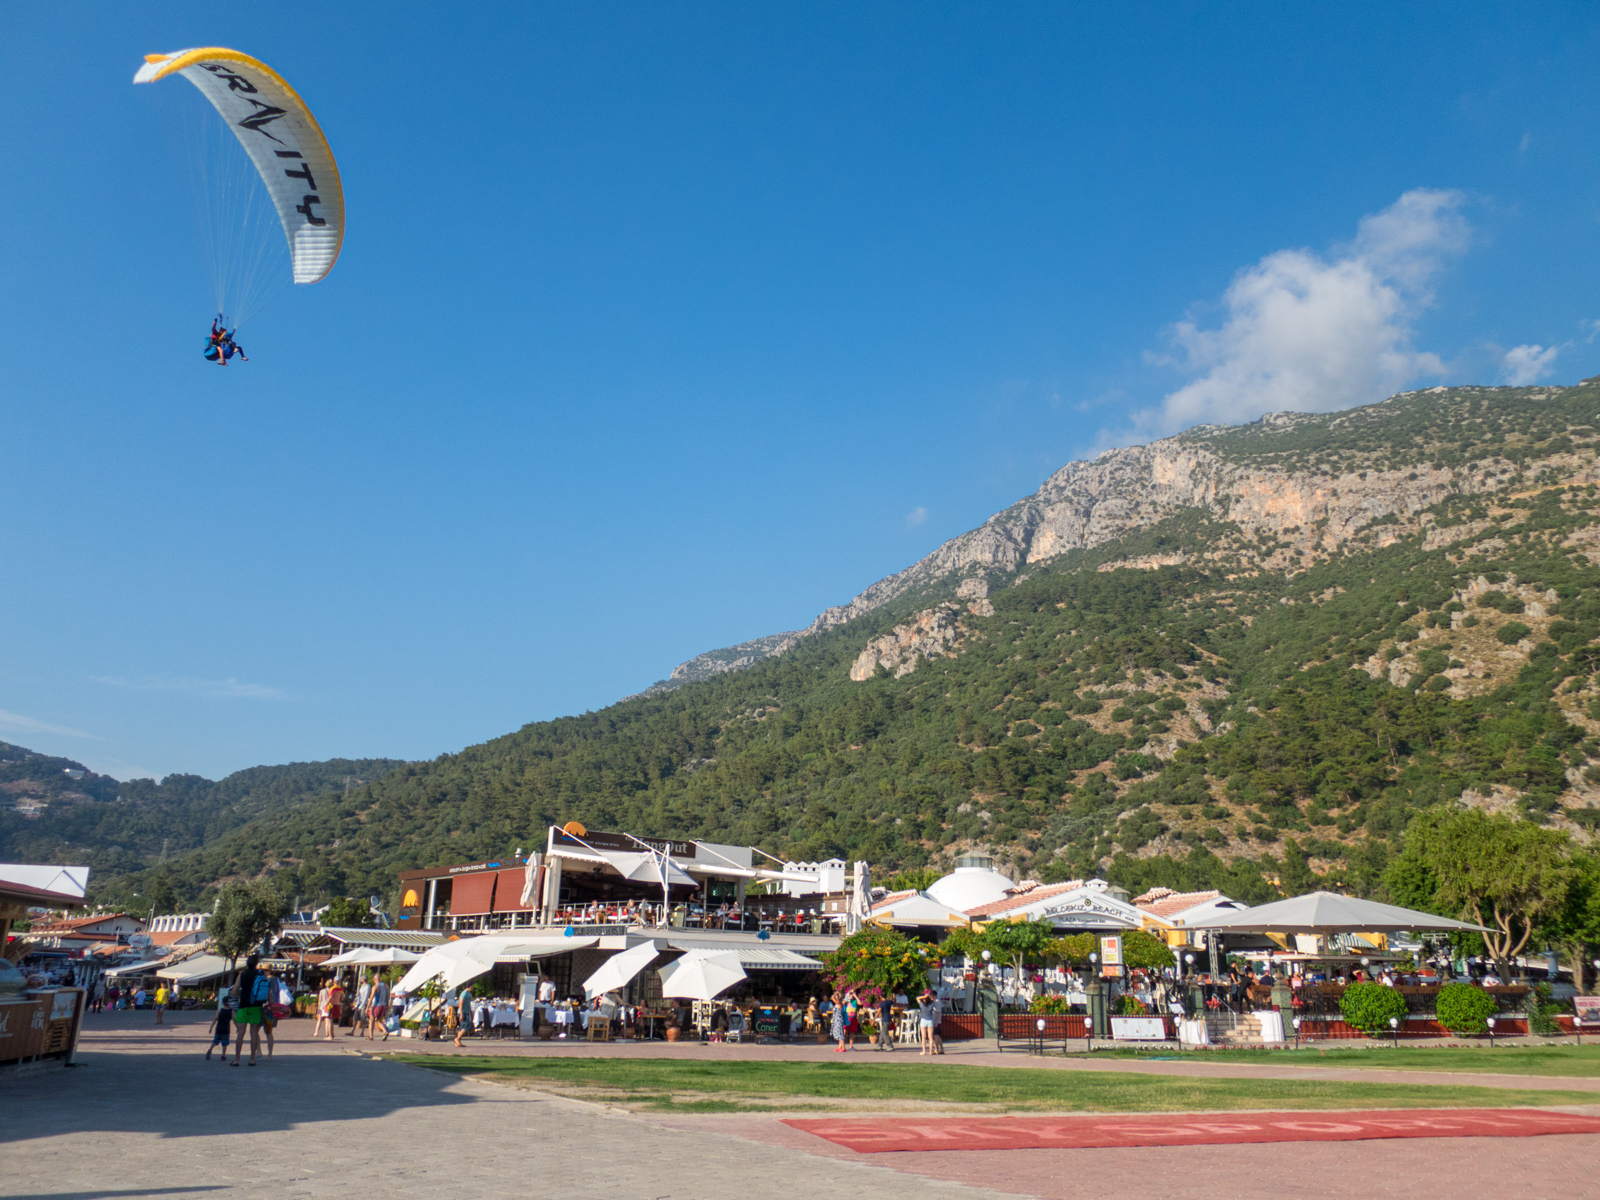 Paraglider coming in to land